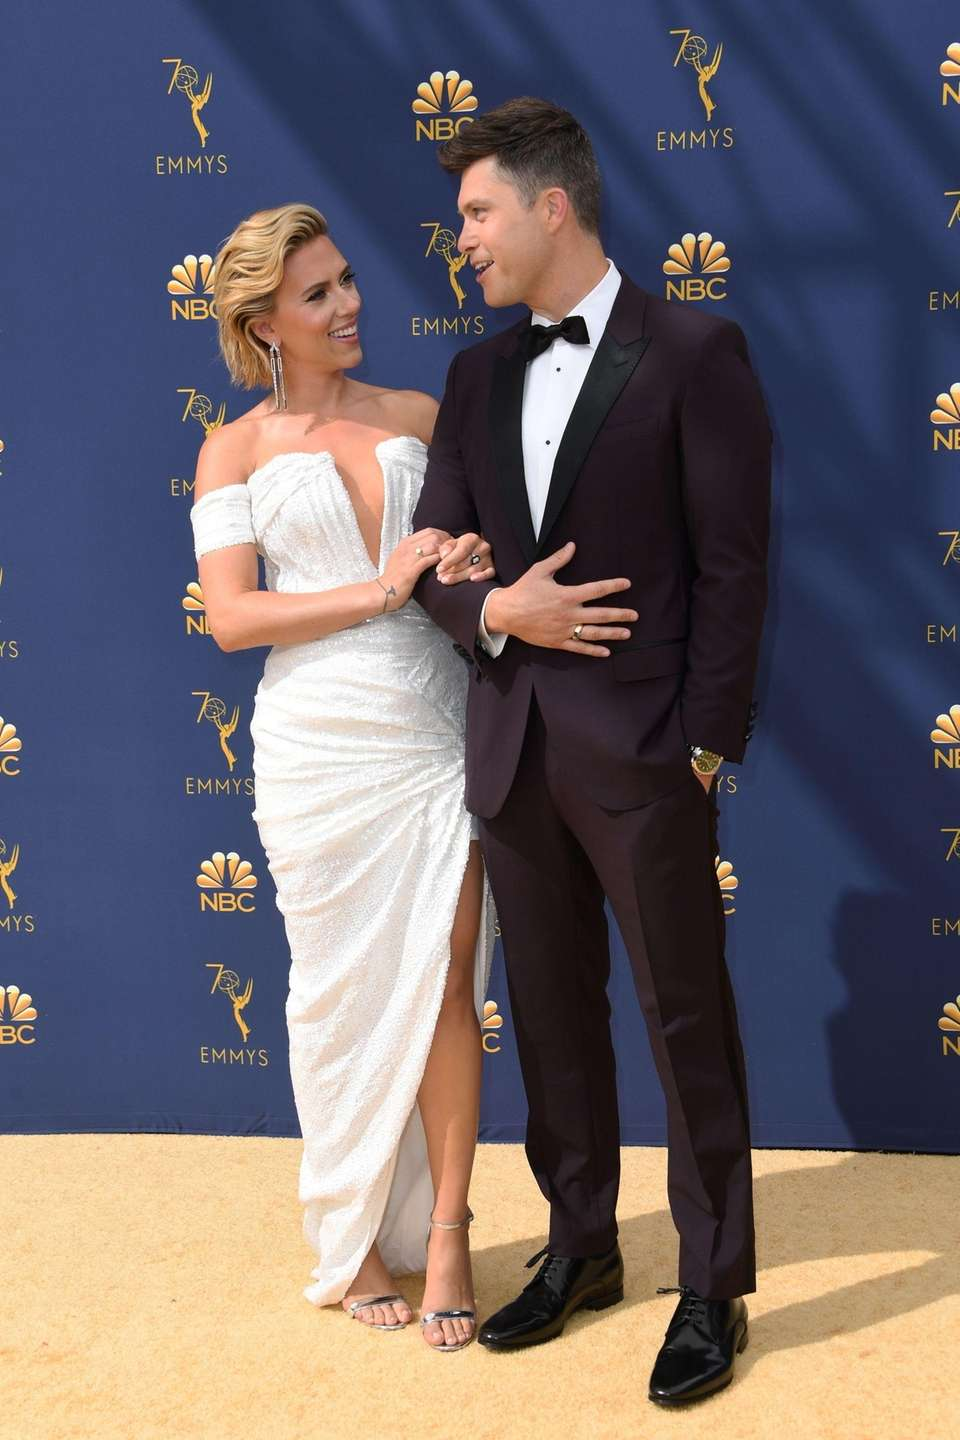 Scarlett Johansson and Colin Jost arrive for the